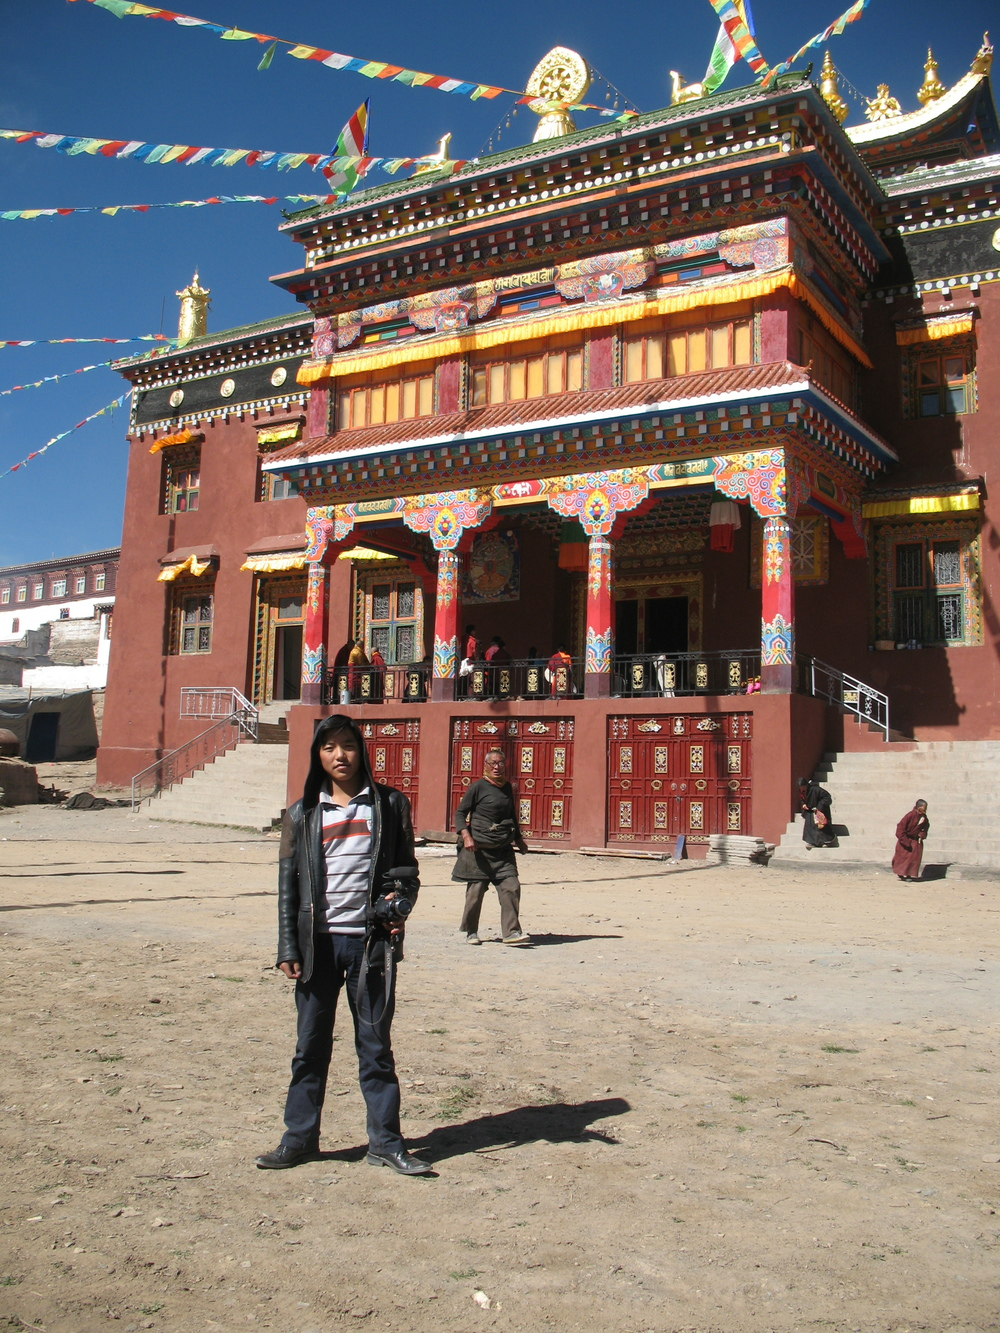 Sonam Drakpa in front of the Assembly Hall at Gemong Monastery